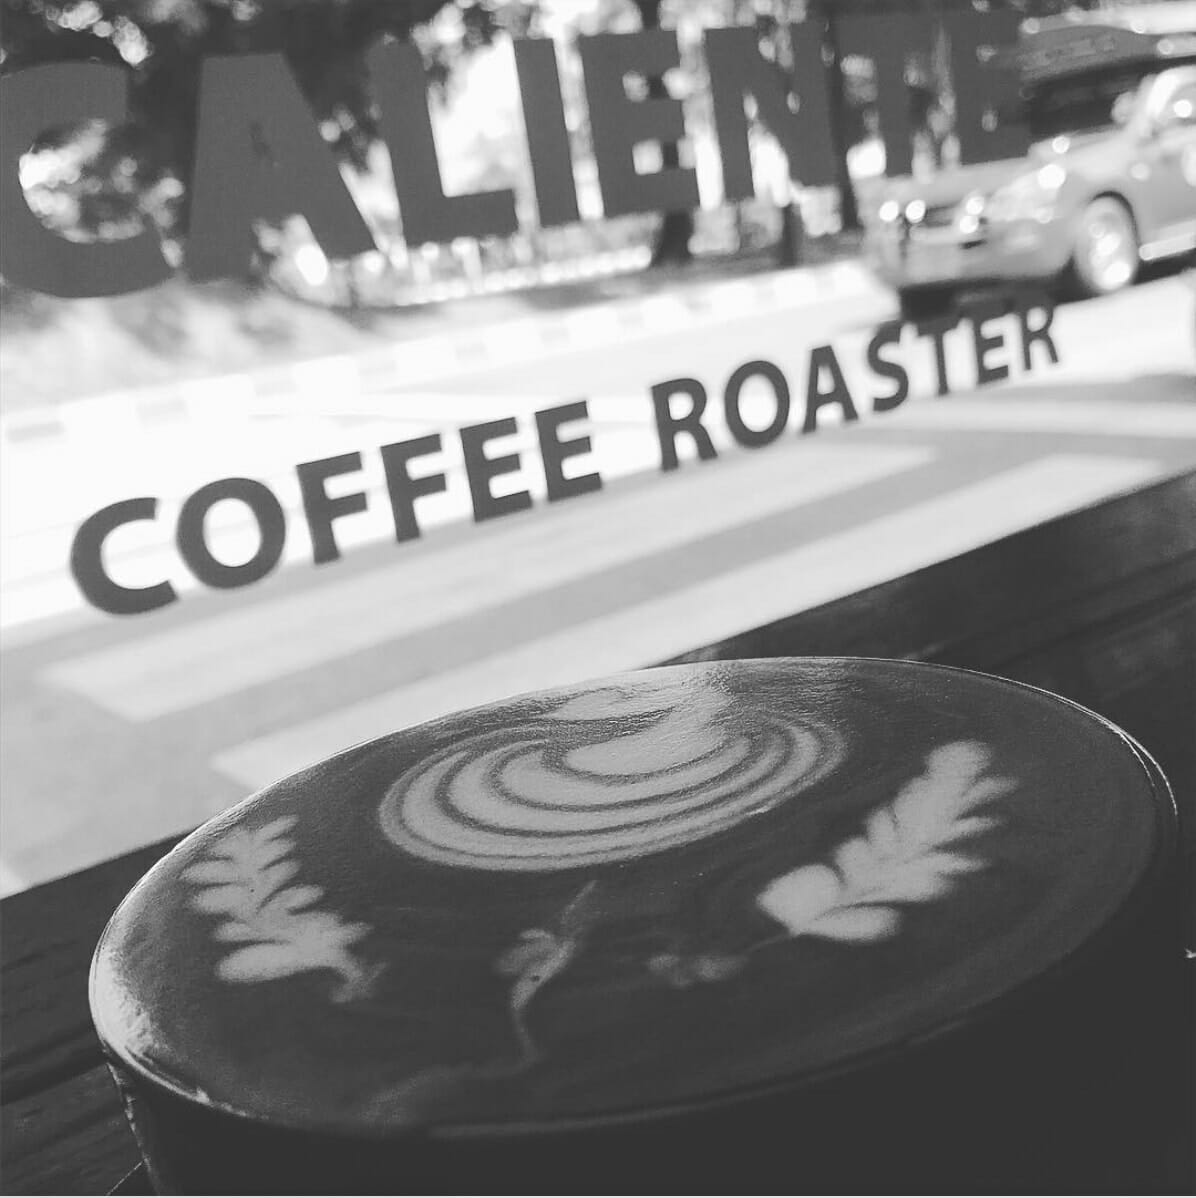 Caliente Coffee Roaster